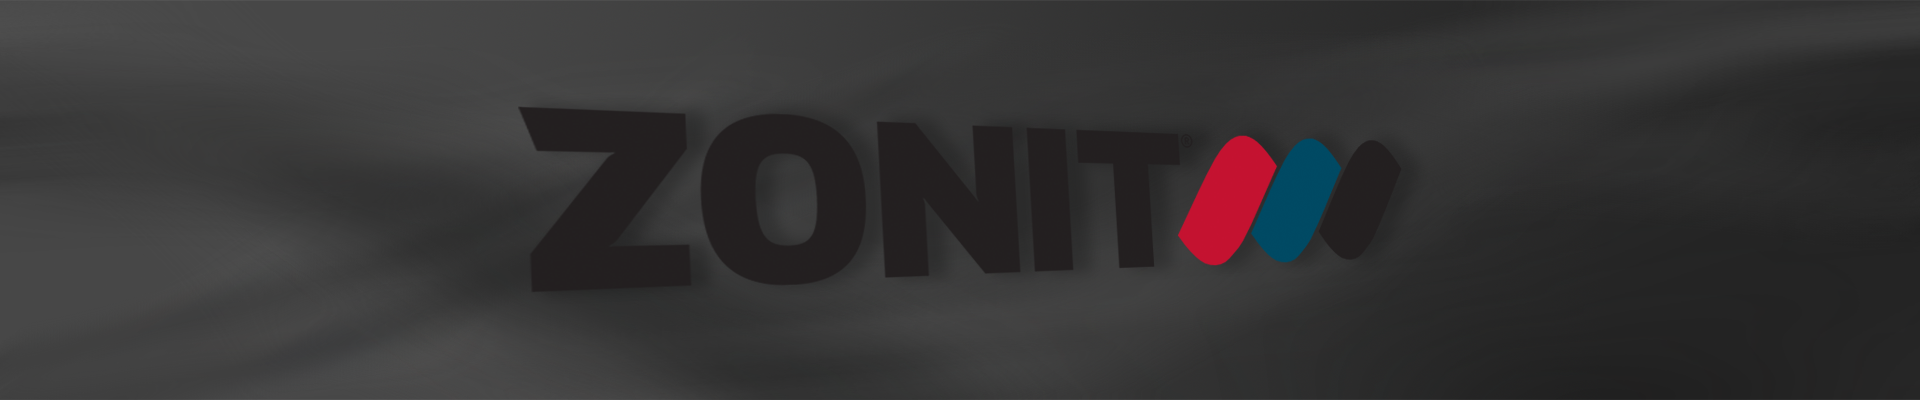 Zonit Banner